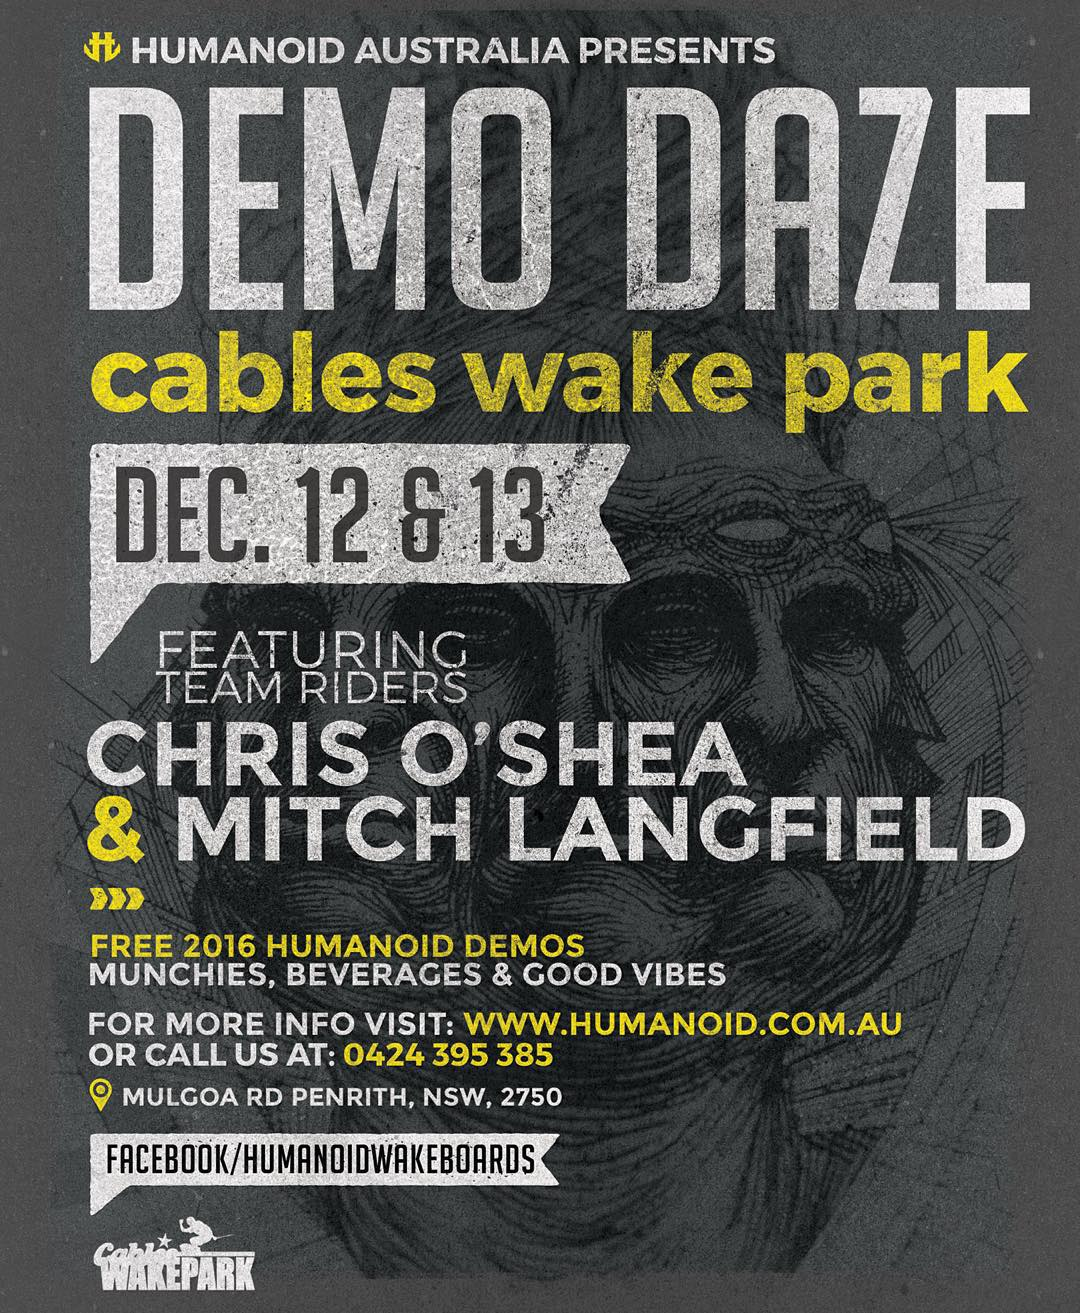 Catch @livesimple and @mitchlangfield this weekend at @cableswakepark!  Demo some of the new decks and take a peep at humanodwake.com.au #wakeboarding